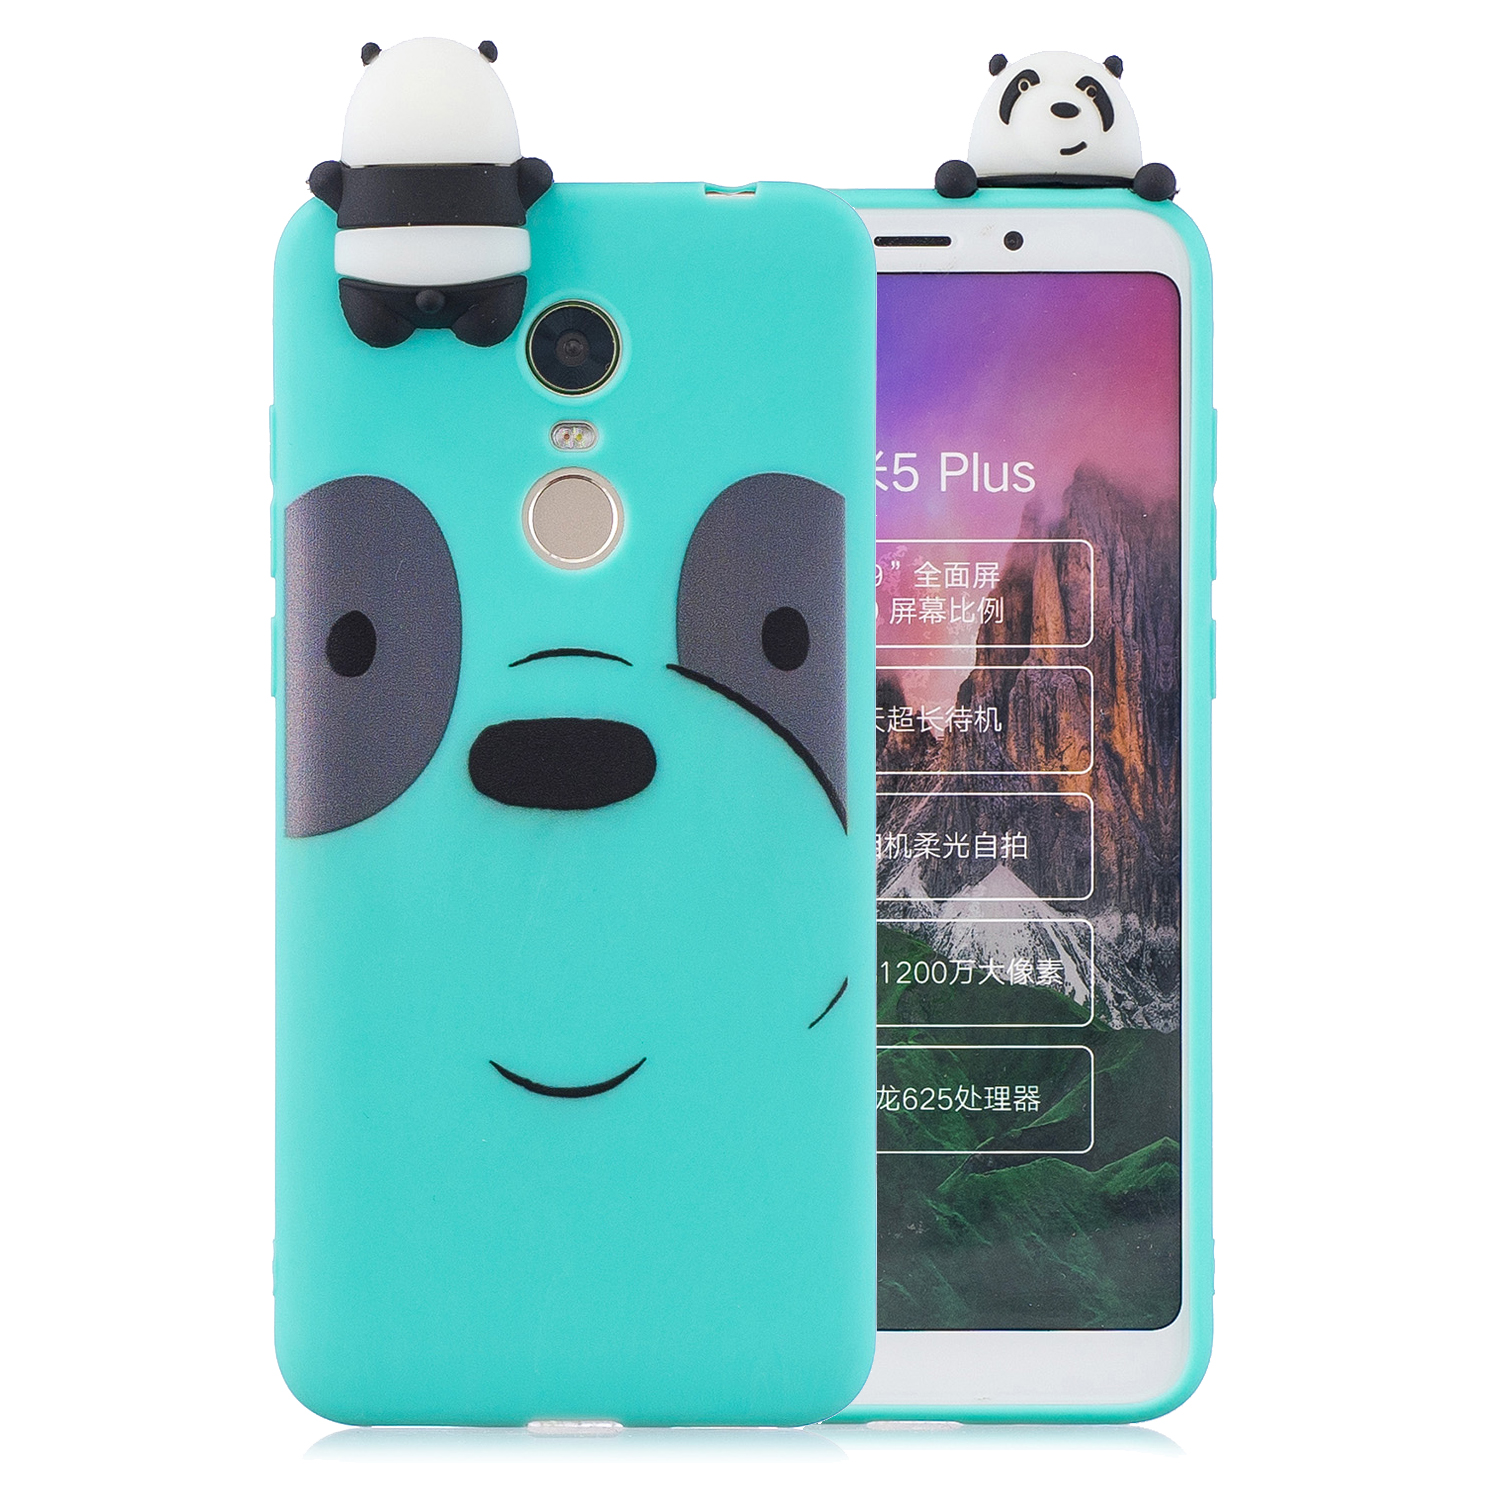 For Redmi 8/8A/5/Note 8T Mobile Phone Case Cute Cellphone Shell Soft TPU Cover with Cartoon Pig Duck Bear Kitten Lovely Pattern Light blue